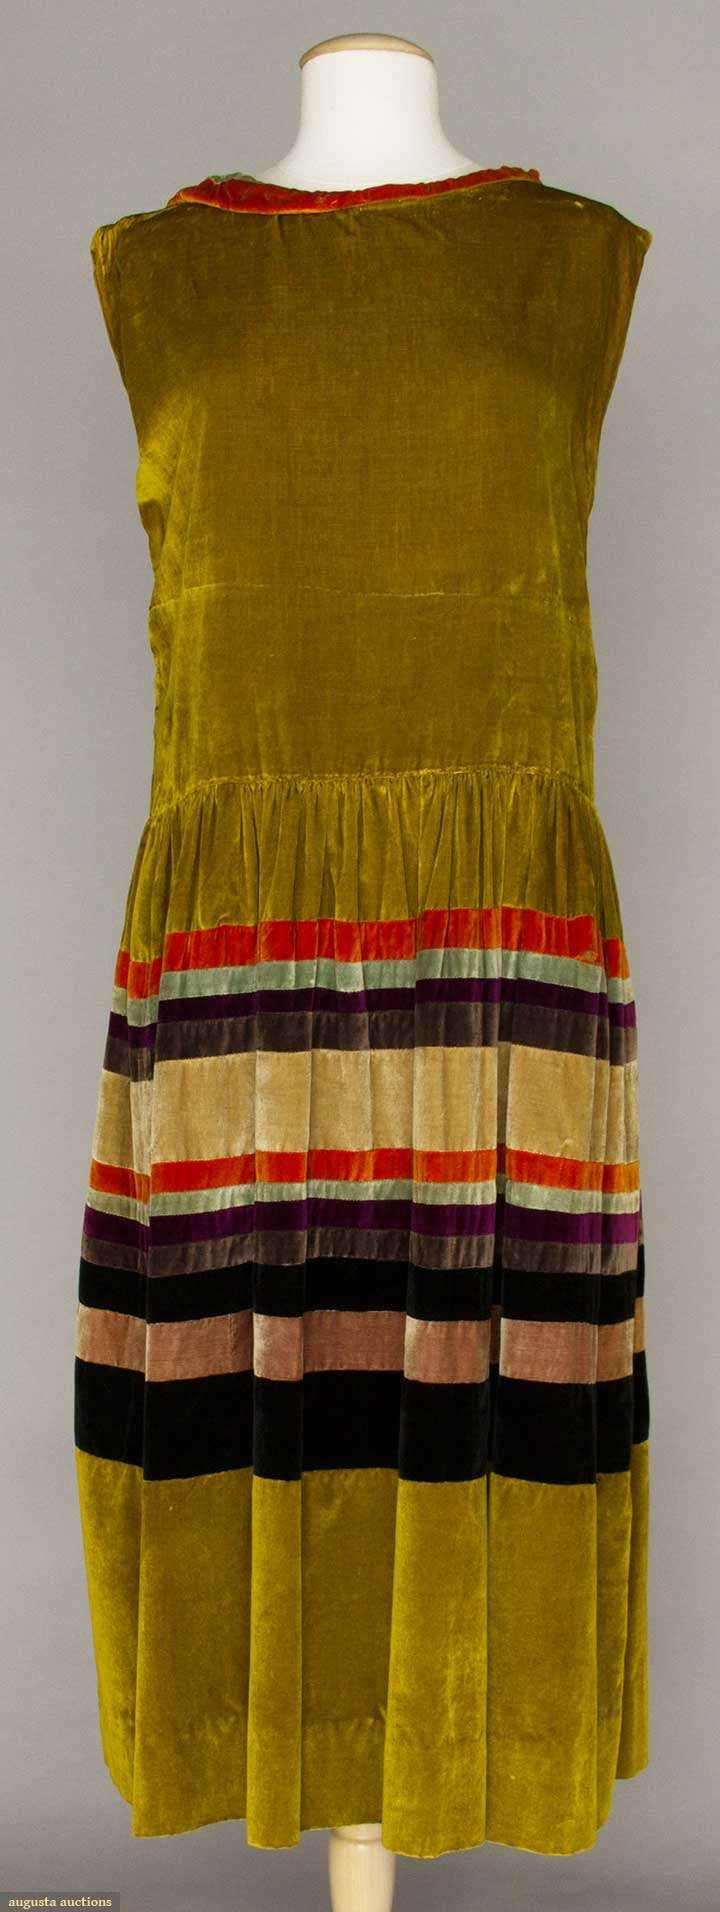 Dress | Margarete Neumann | Germany | 1920s | velvet |